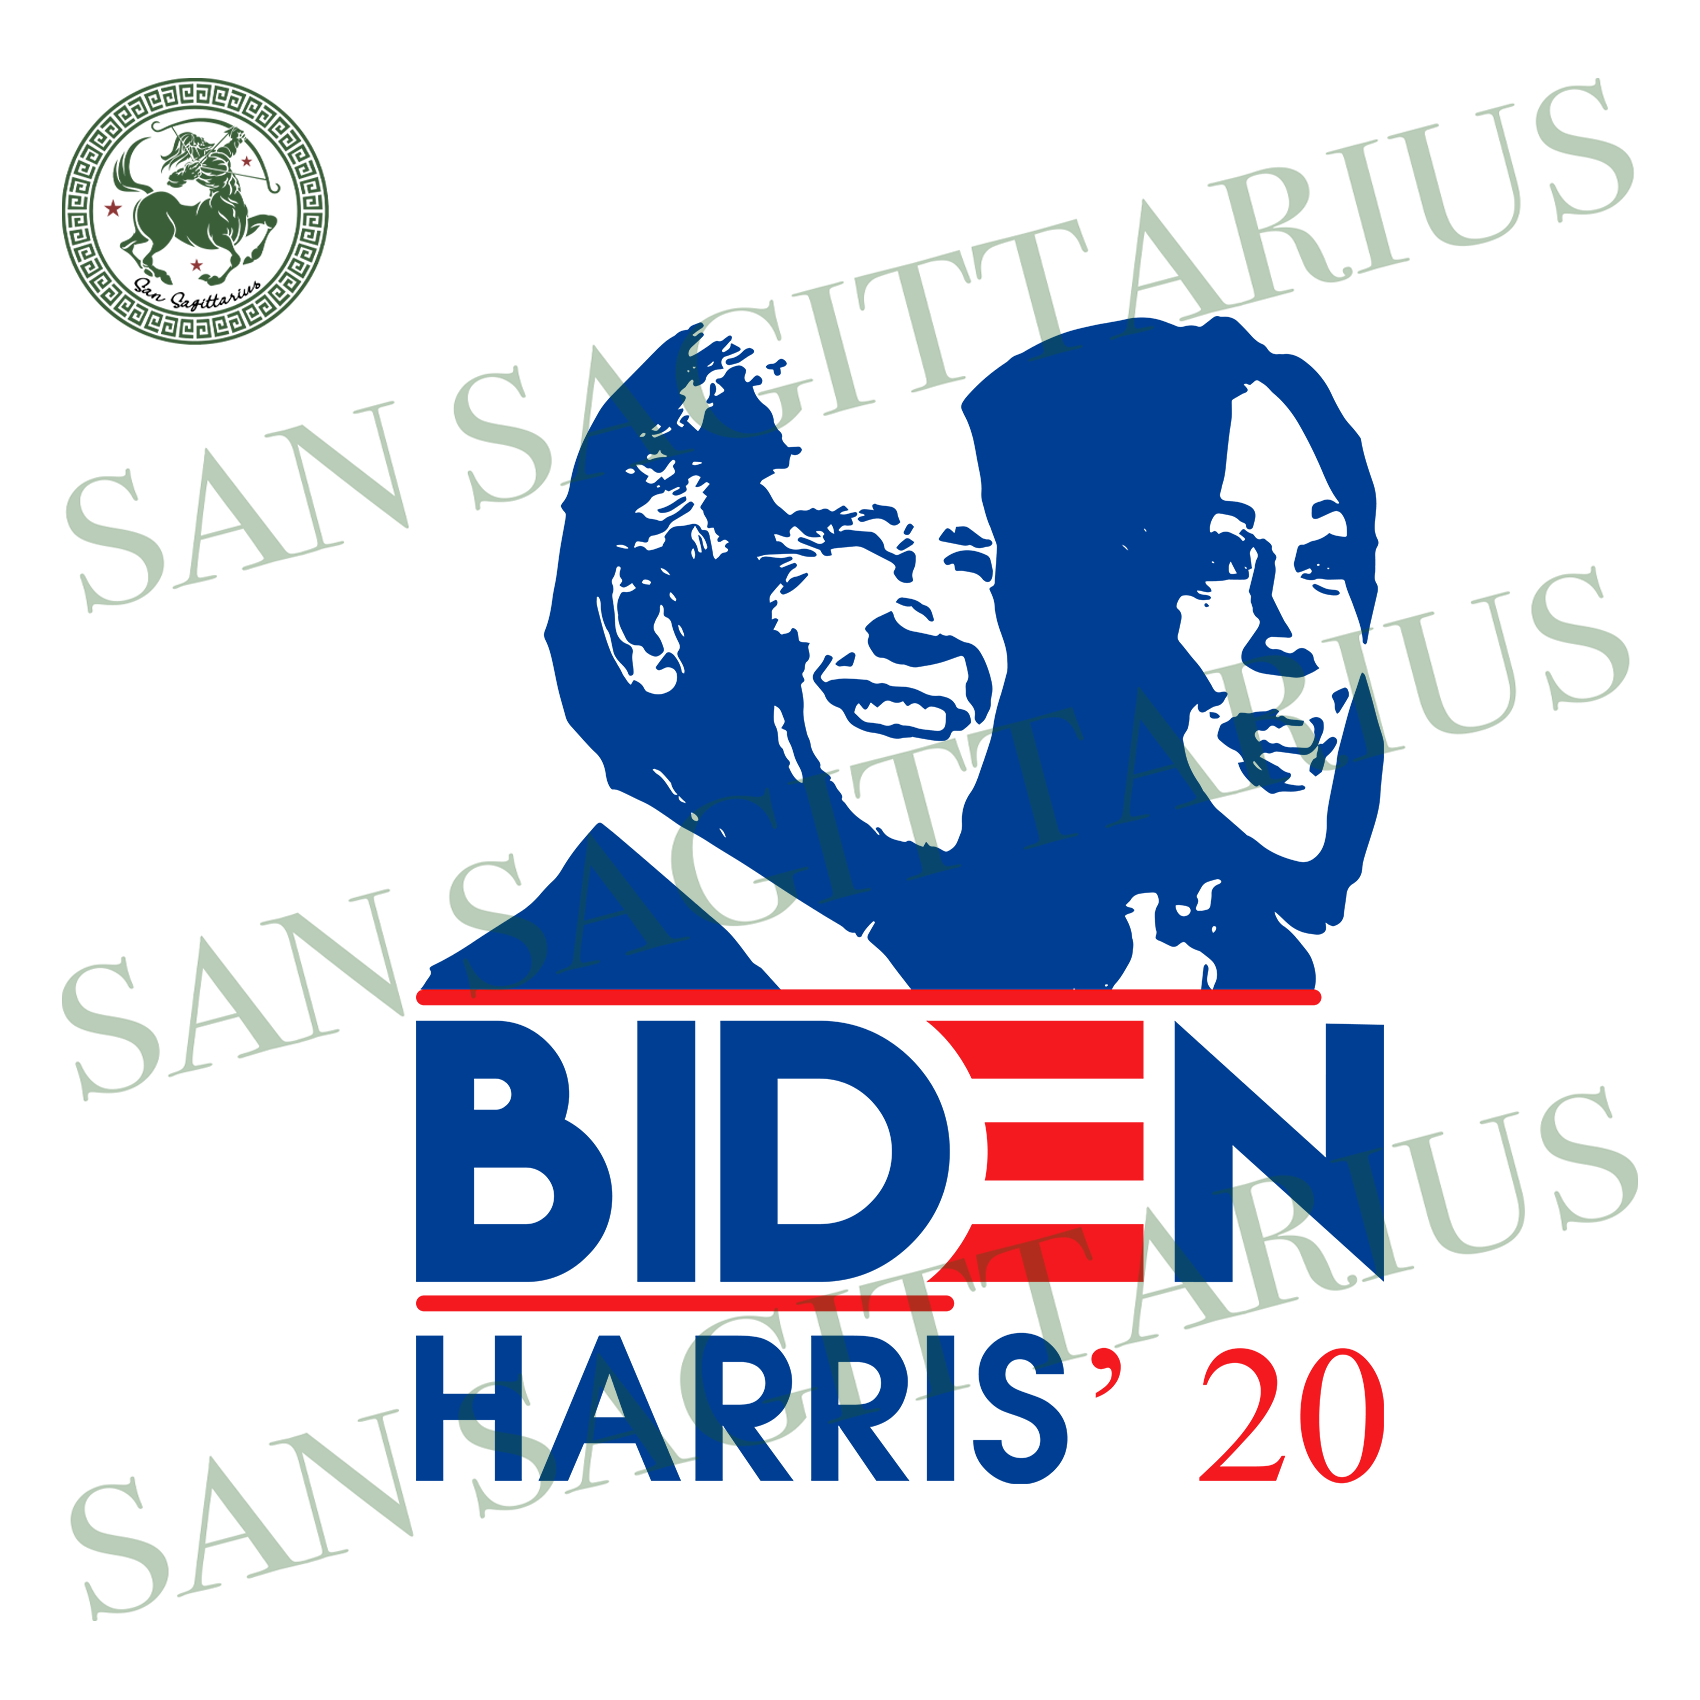 2020 Biden harris svg,biden 2020 svg,harris 2020 svg,political shirt svg,anti trump 2020 svg,biden for president svg,svg cricut, silhouette svg files, cricut svg, silhouette svg, svg designs,